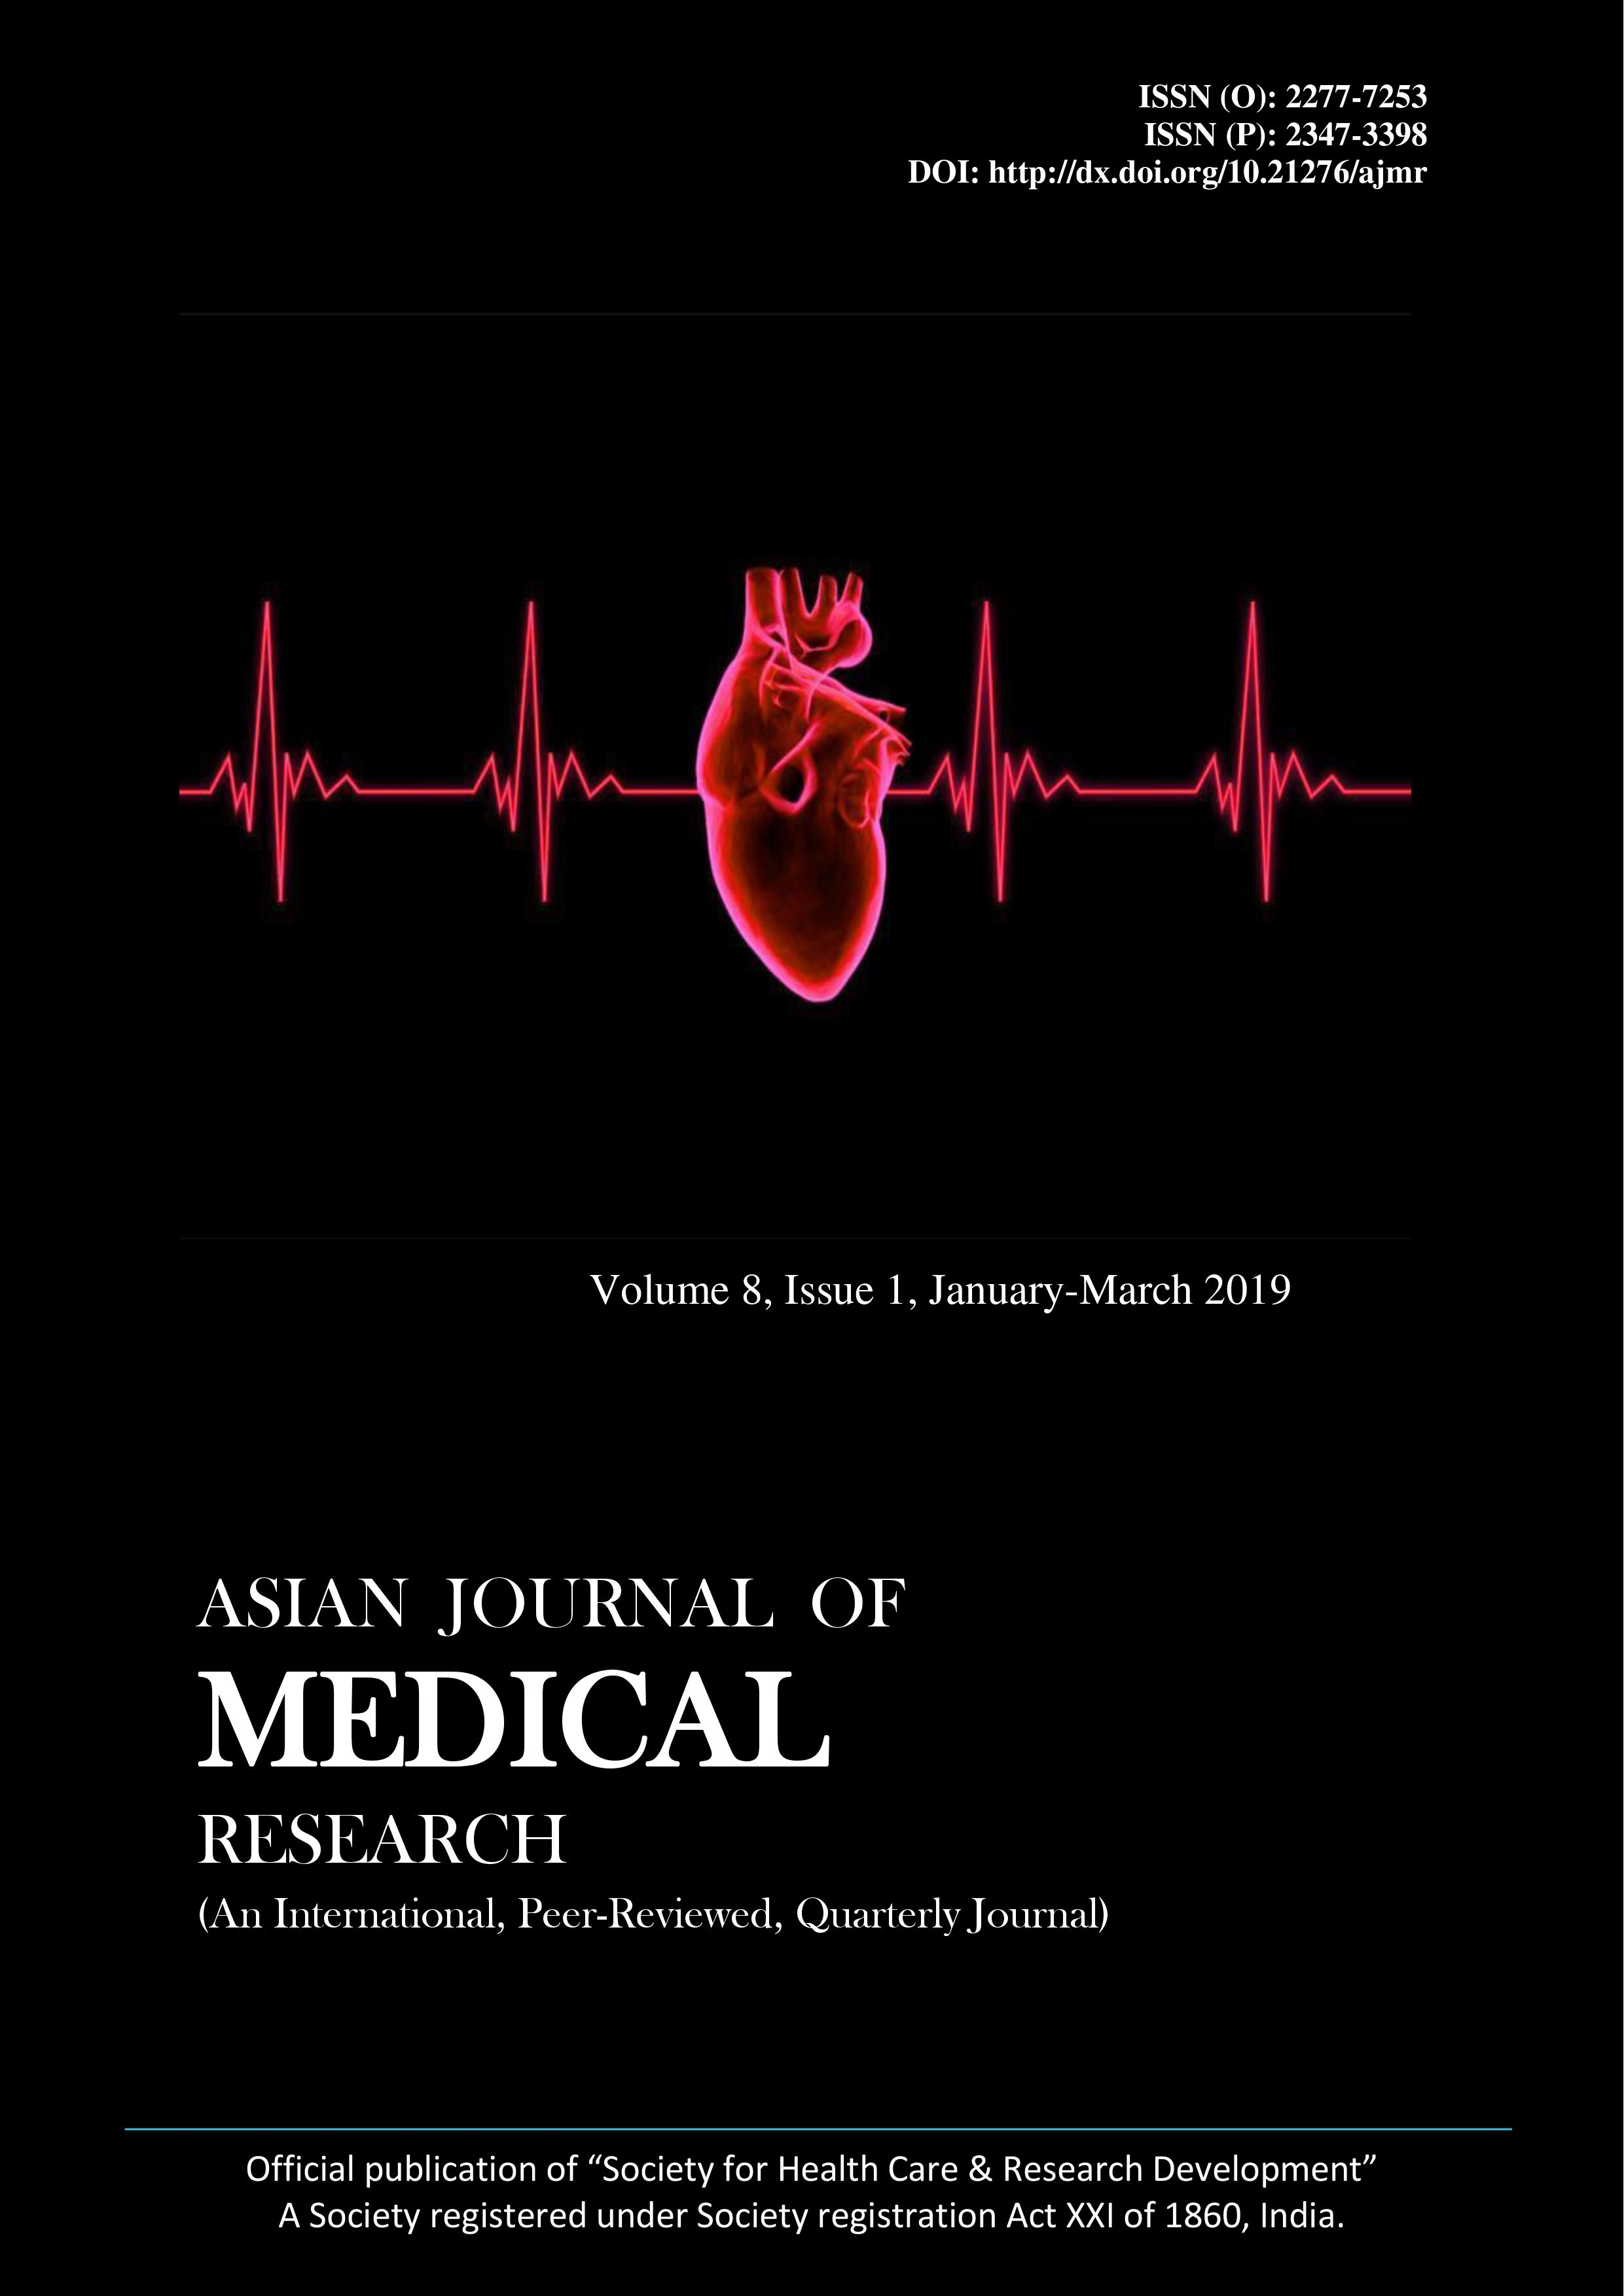 Think, asian medical journals